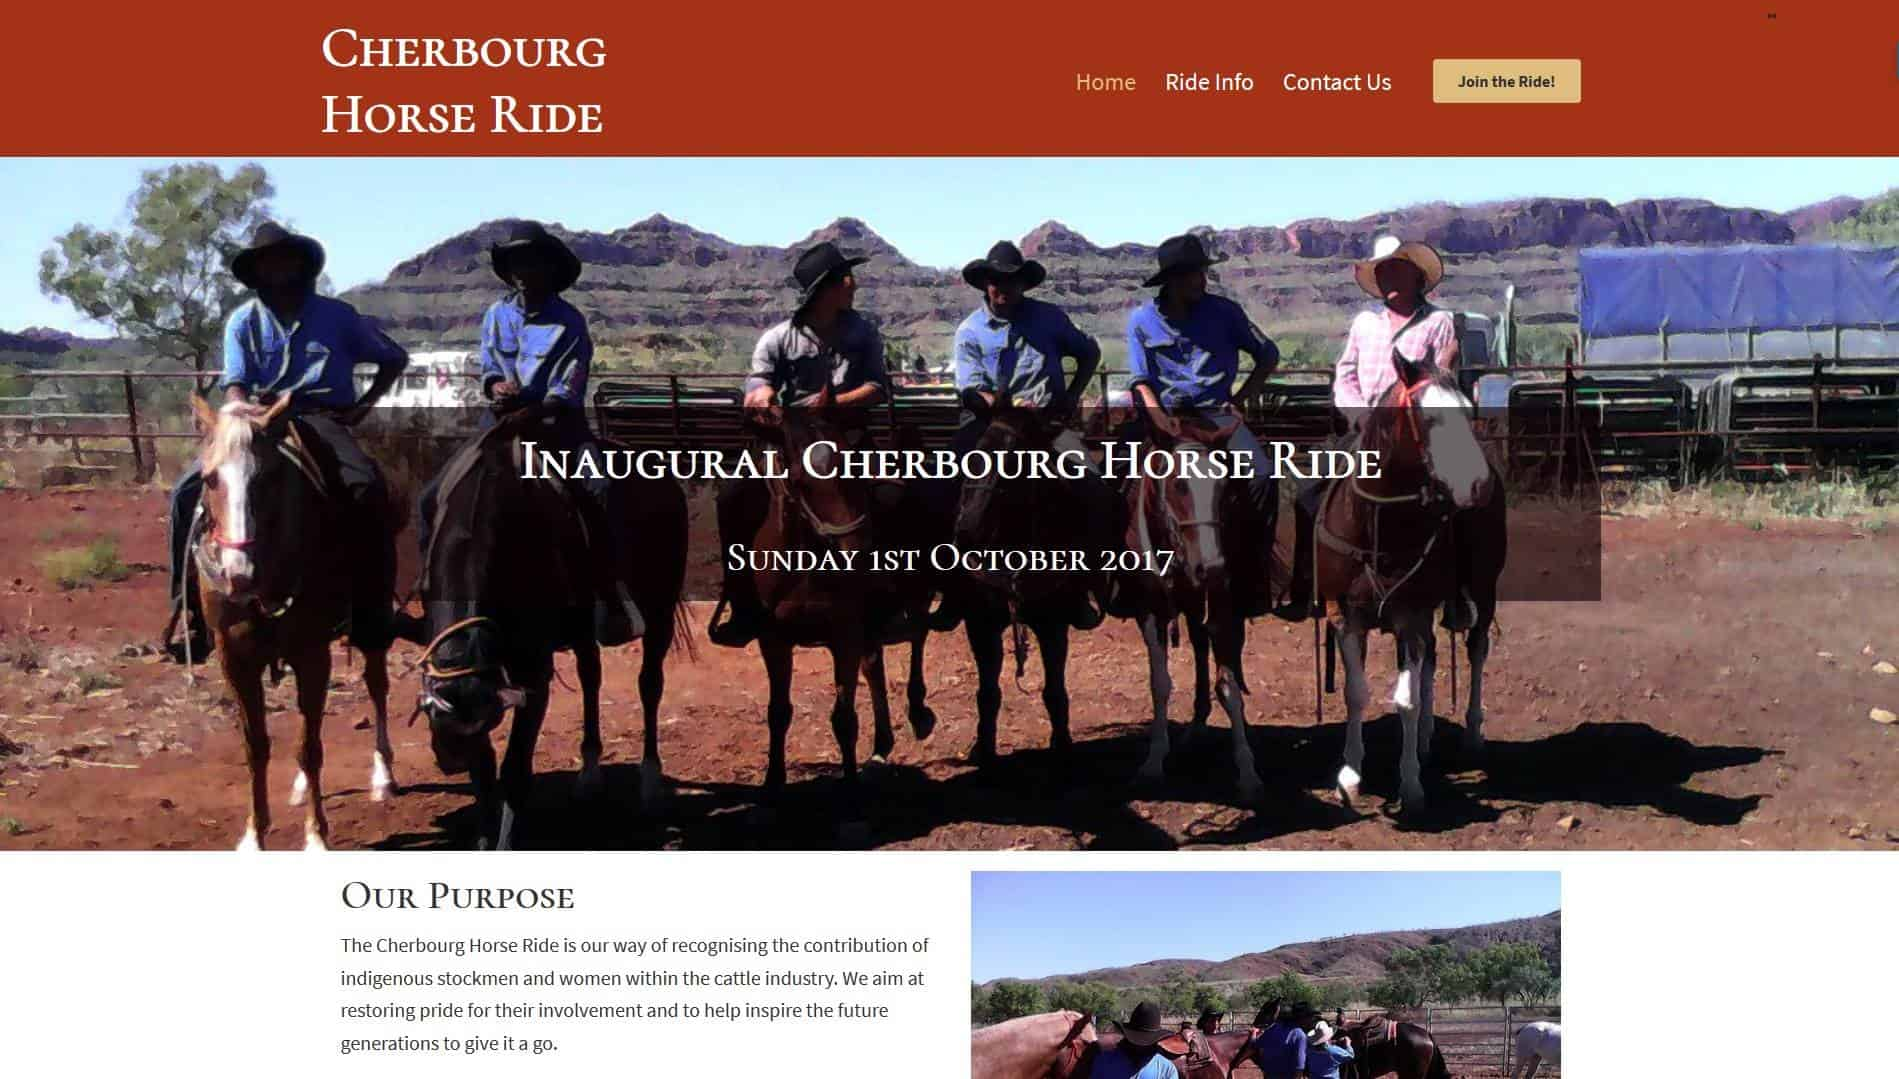 Cherbourg Horse Ride Website Development by Impulse Impressions